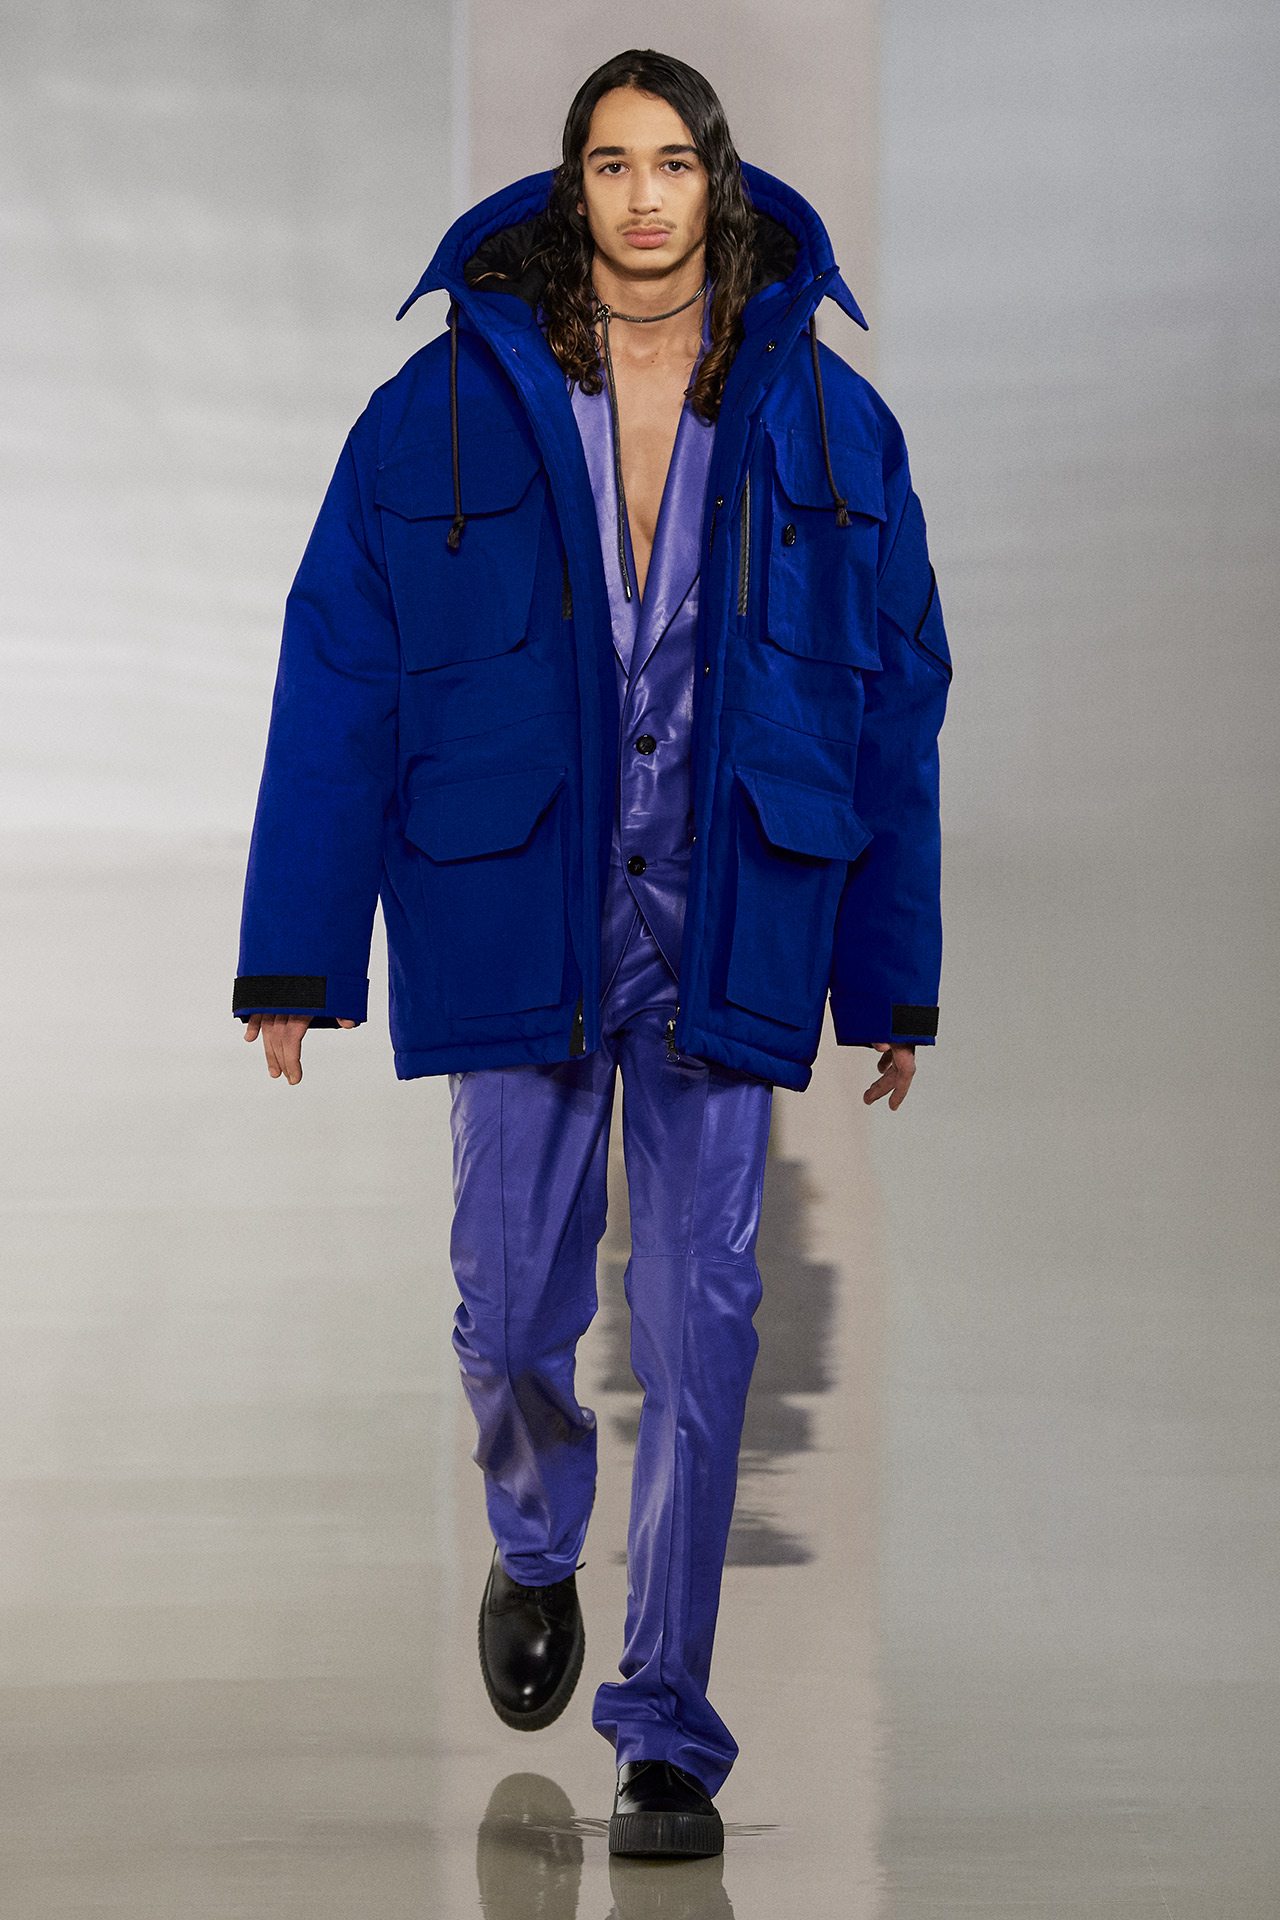 Look Fall/Winter 2020, image 39